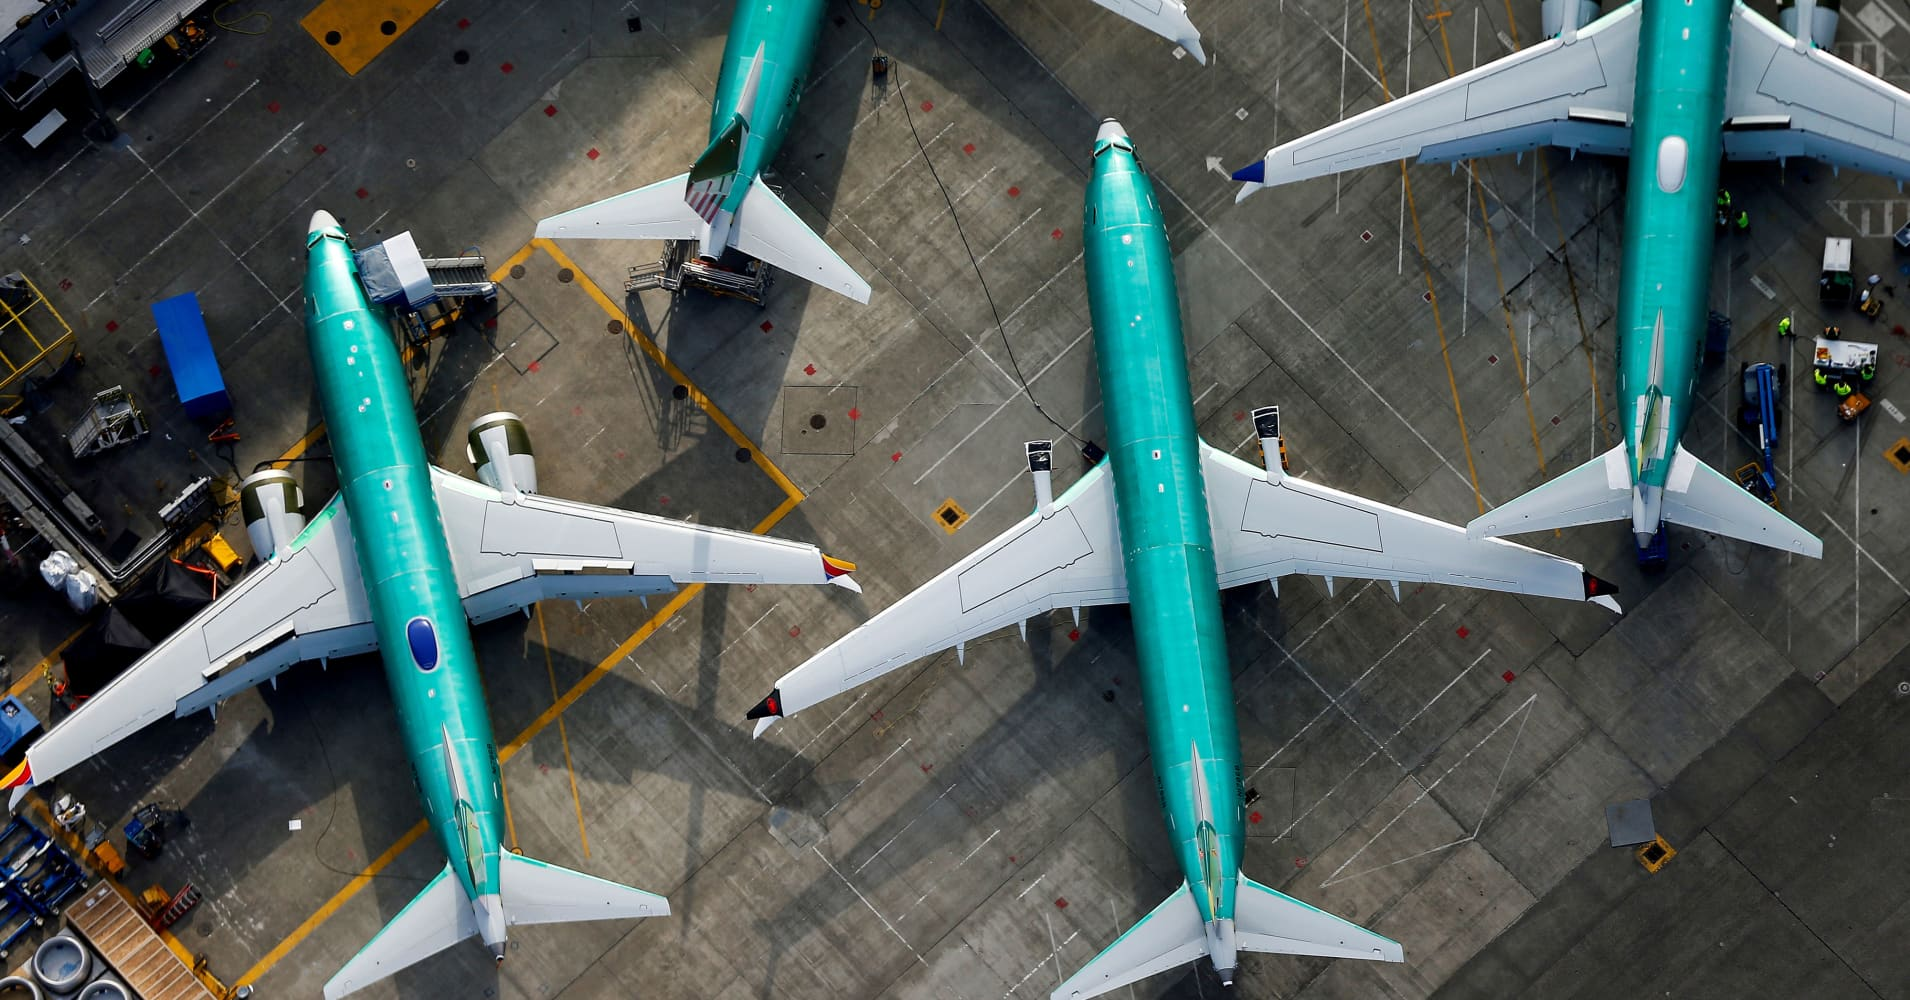 Buy any Boeing pullback in first earnings since 737 Max crisis, market watcher says